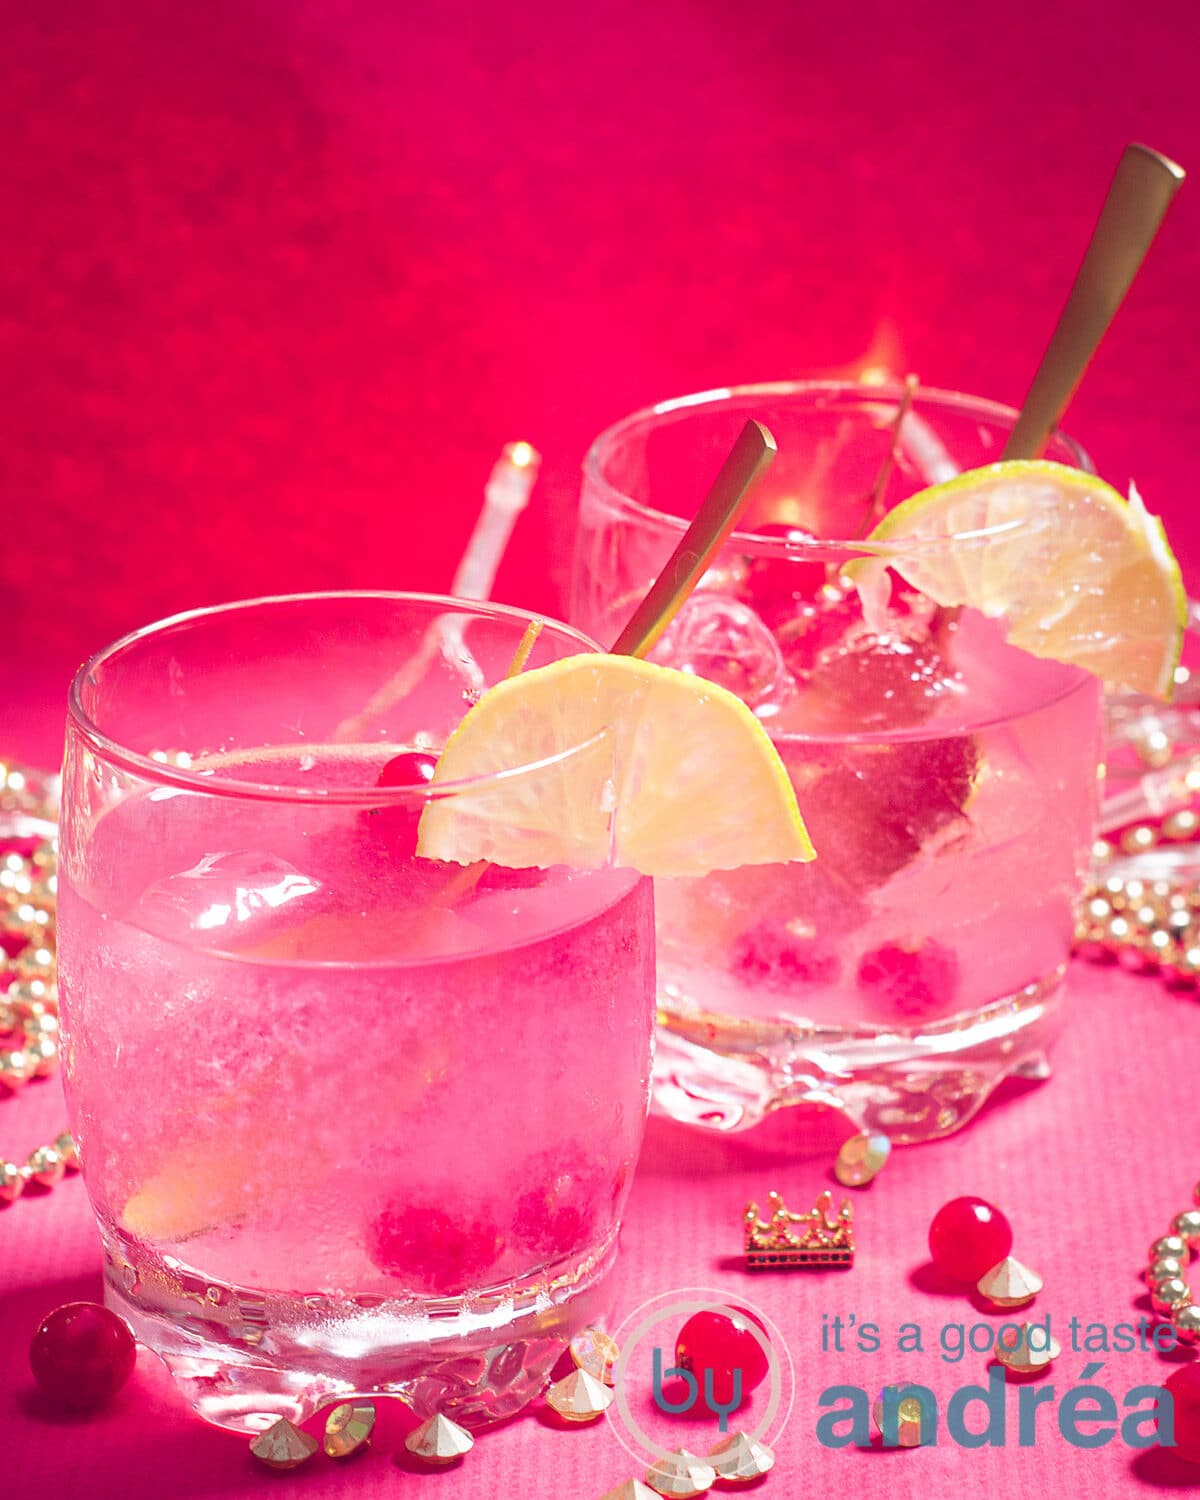 Two glasses of Caipirinha with red currants on a red background